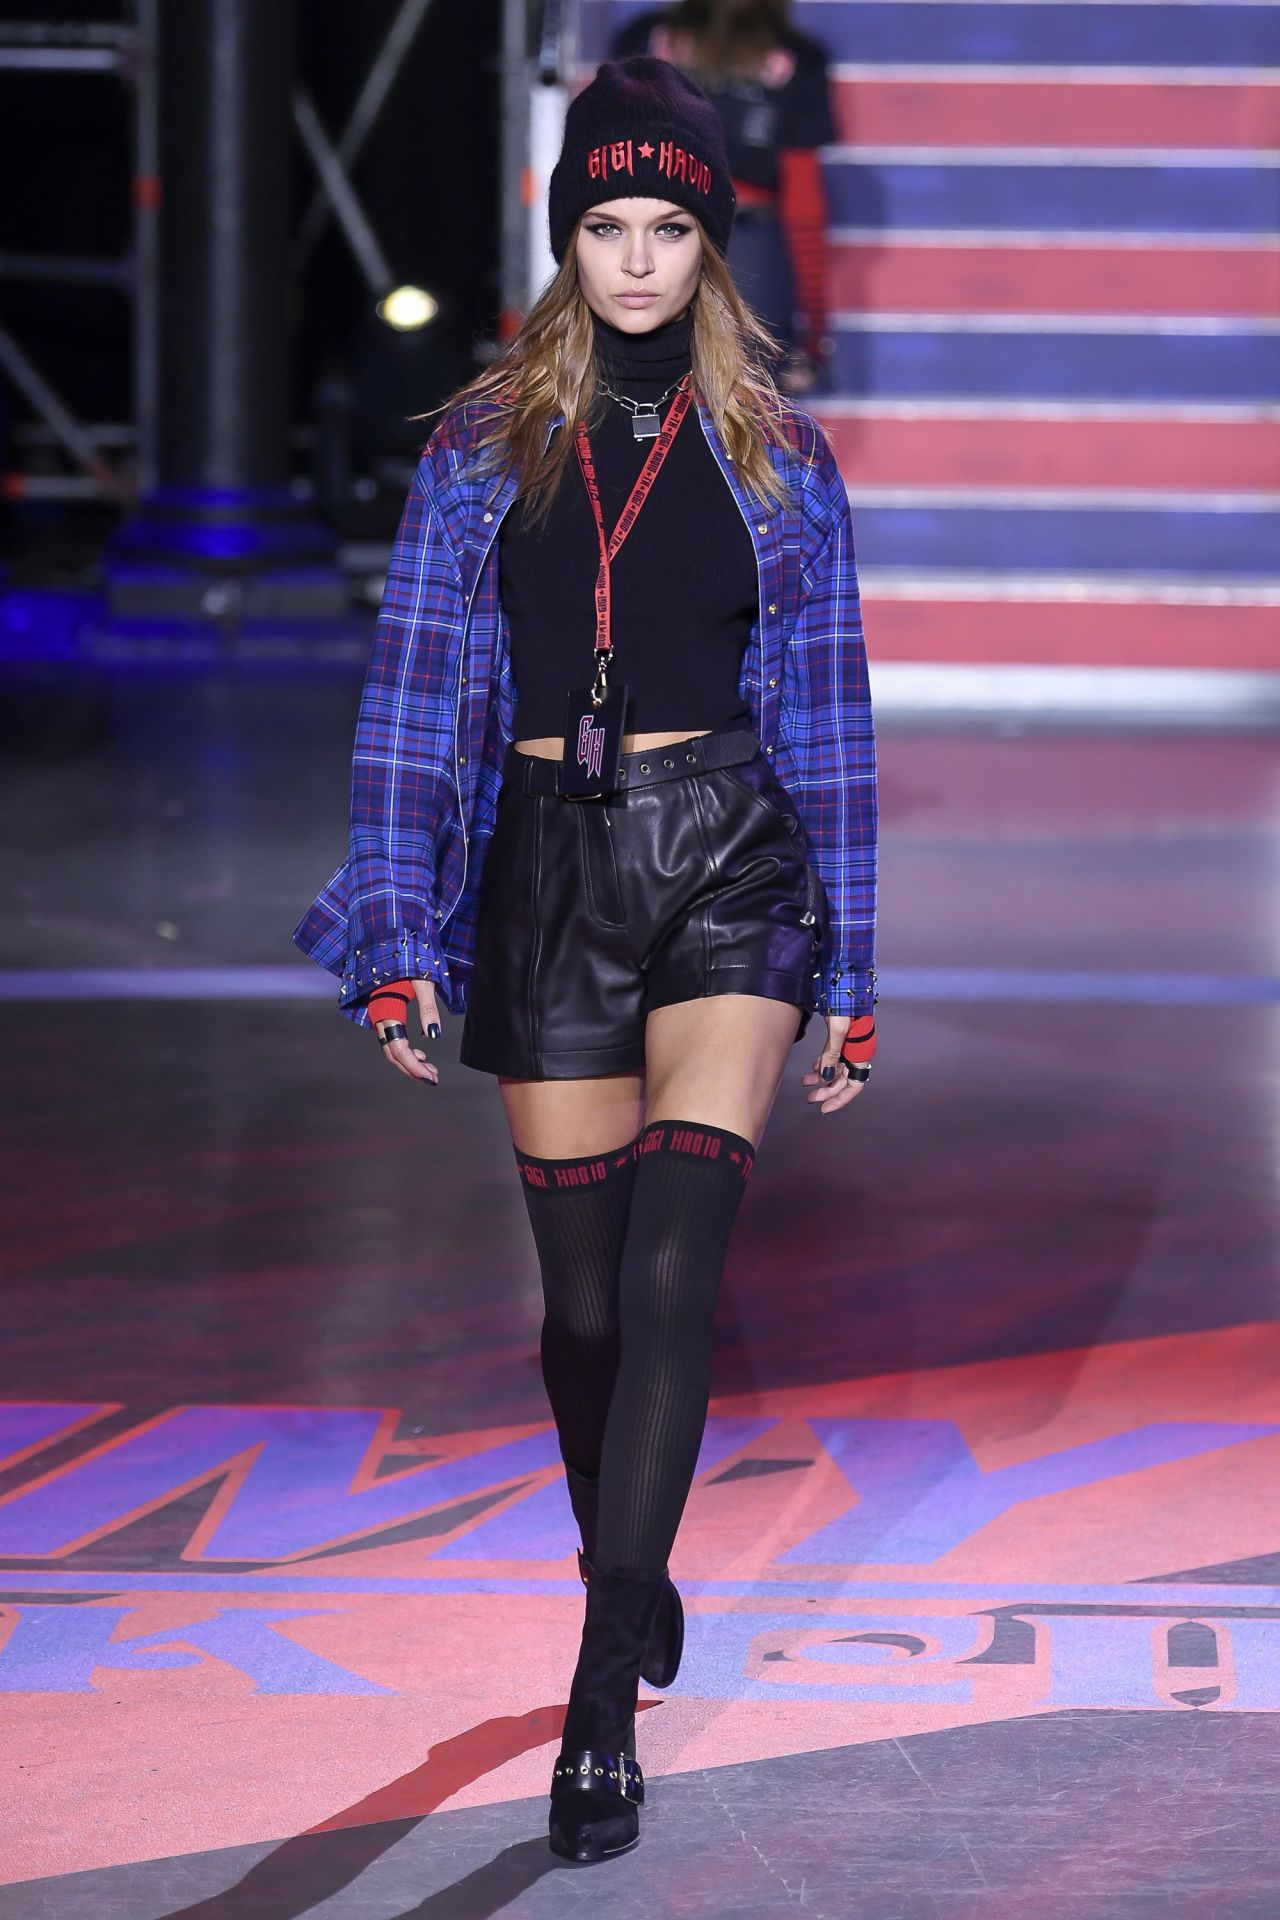 Josephine skriver tommy hilfiger fashion show in london 09 19 2017 - Tommy hilfiger show ...